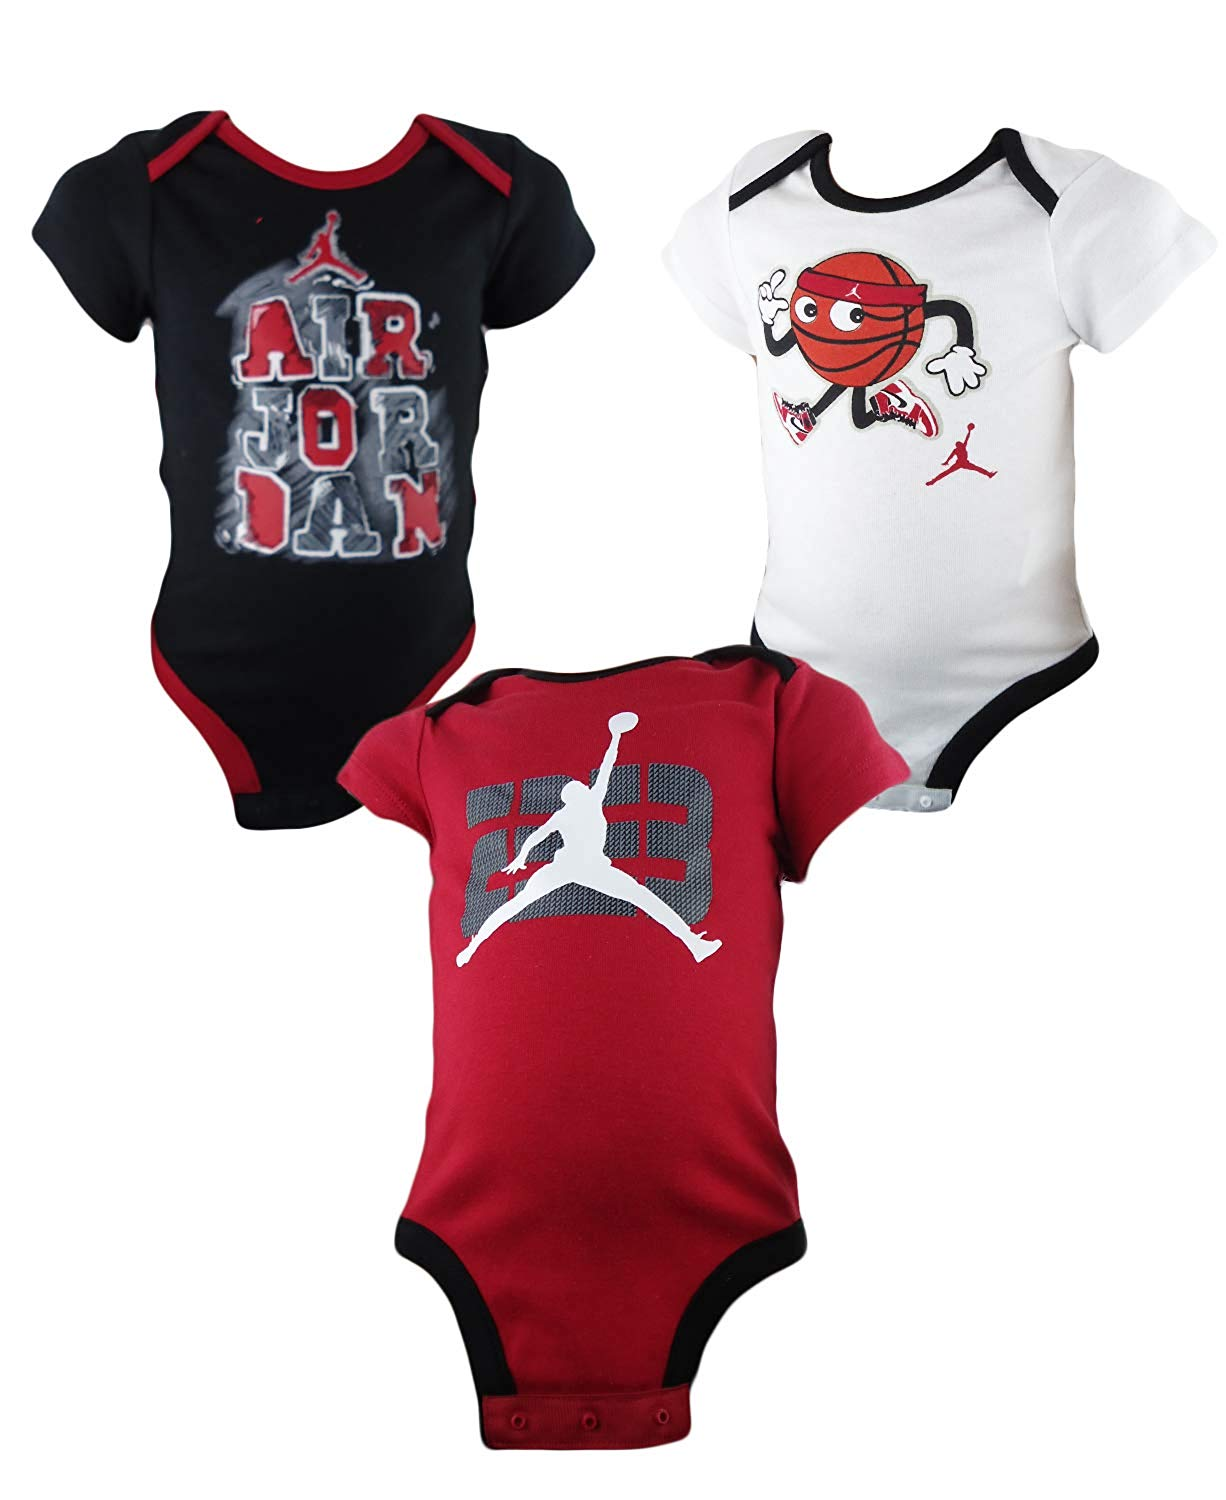 28d1a3ae244961 AIR Jordan Infant 3 PC Bodysuit Set - Baby Clothes